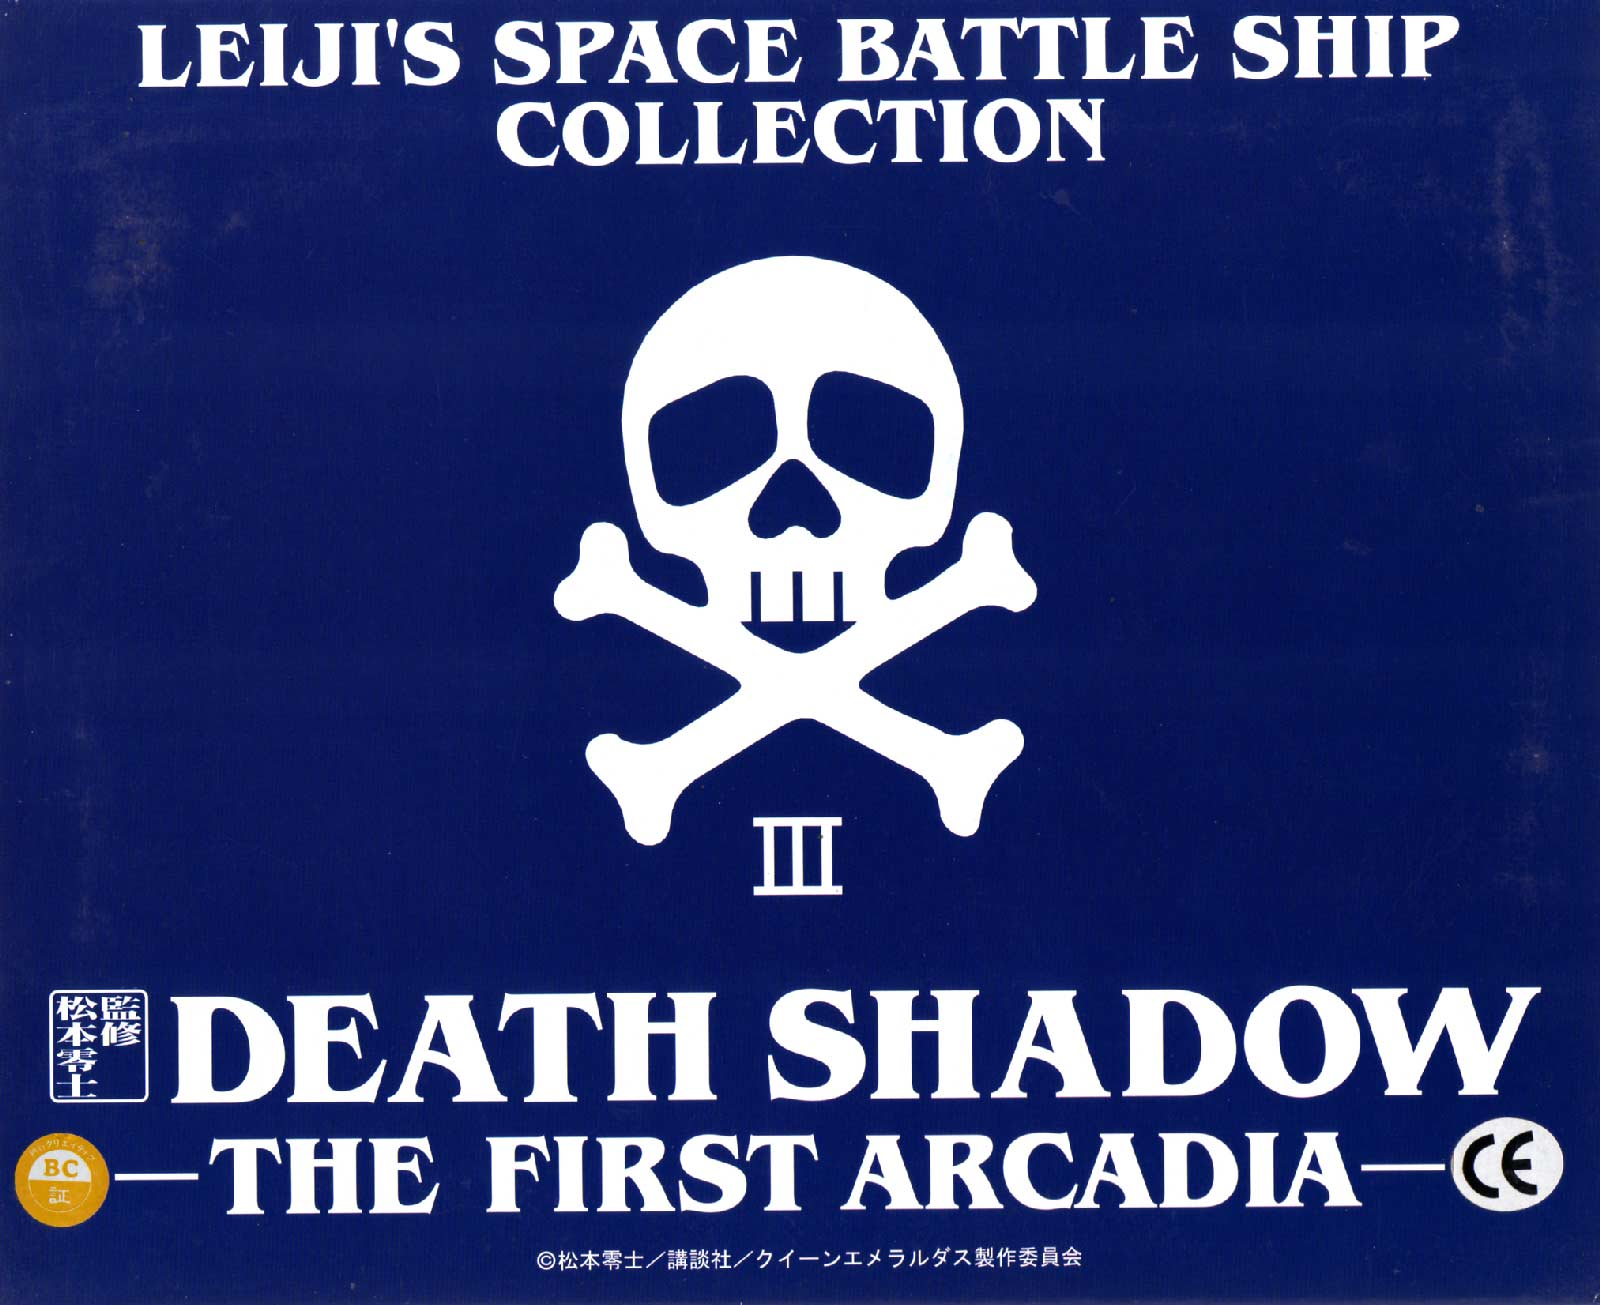 Packaging (dessus) du Death Shadow de Mabell dans la collection Leiji's Space ship (jouet)